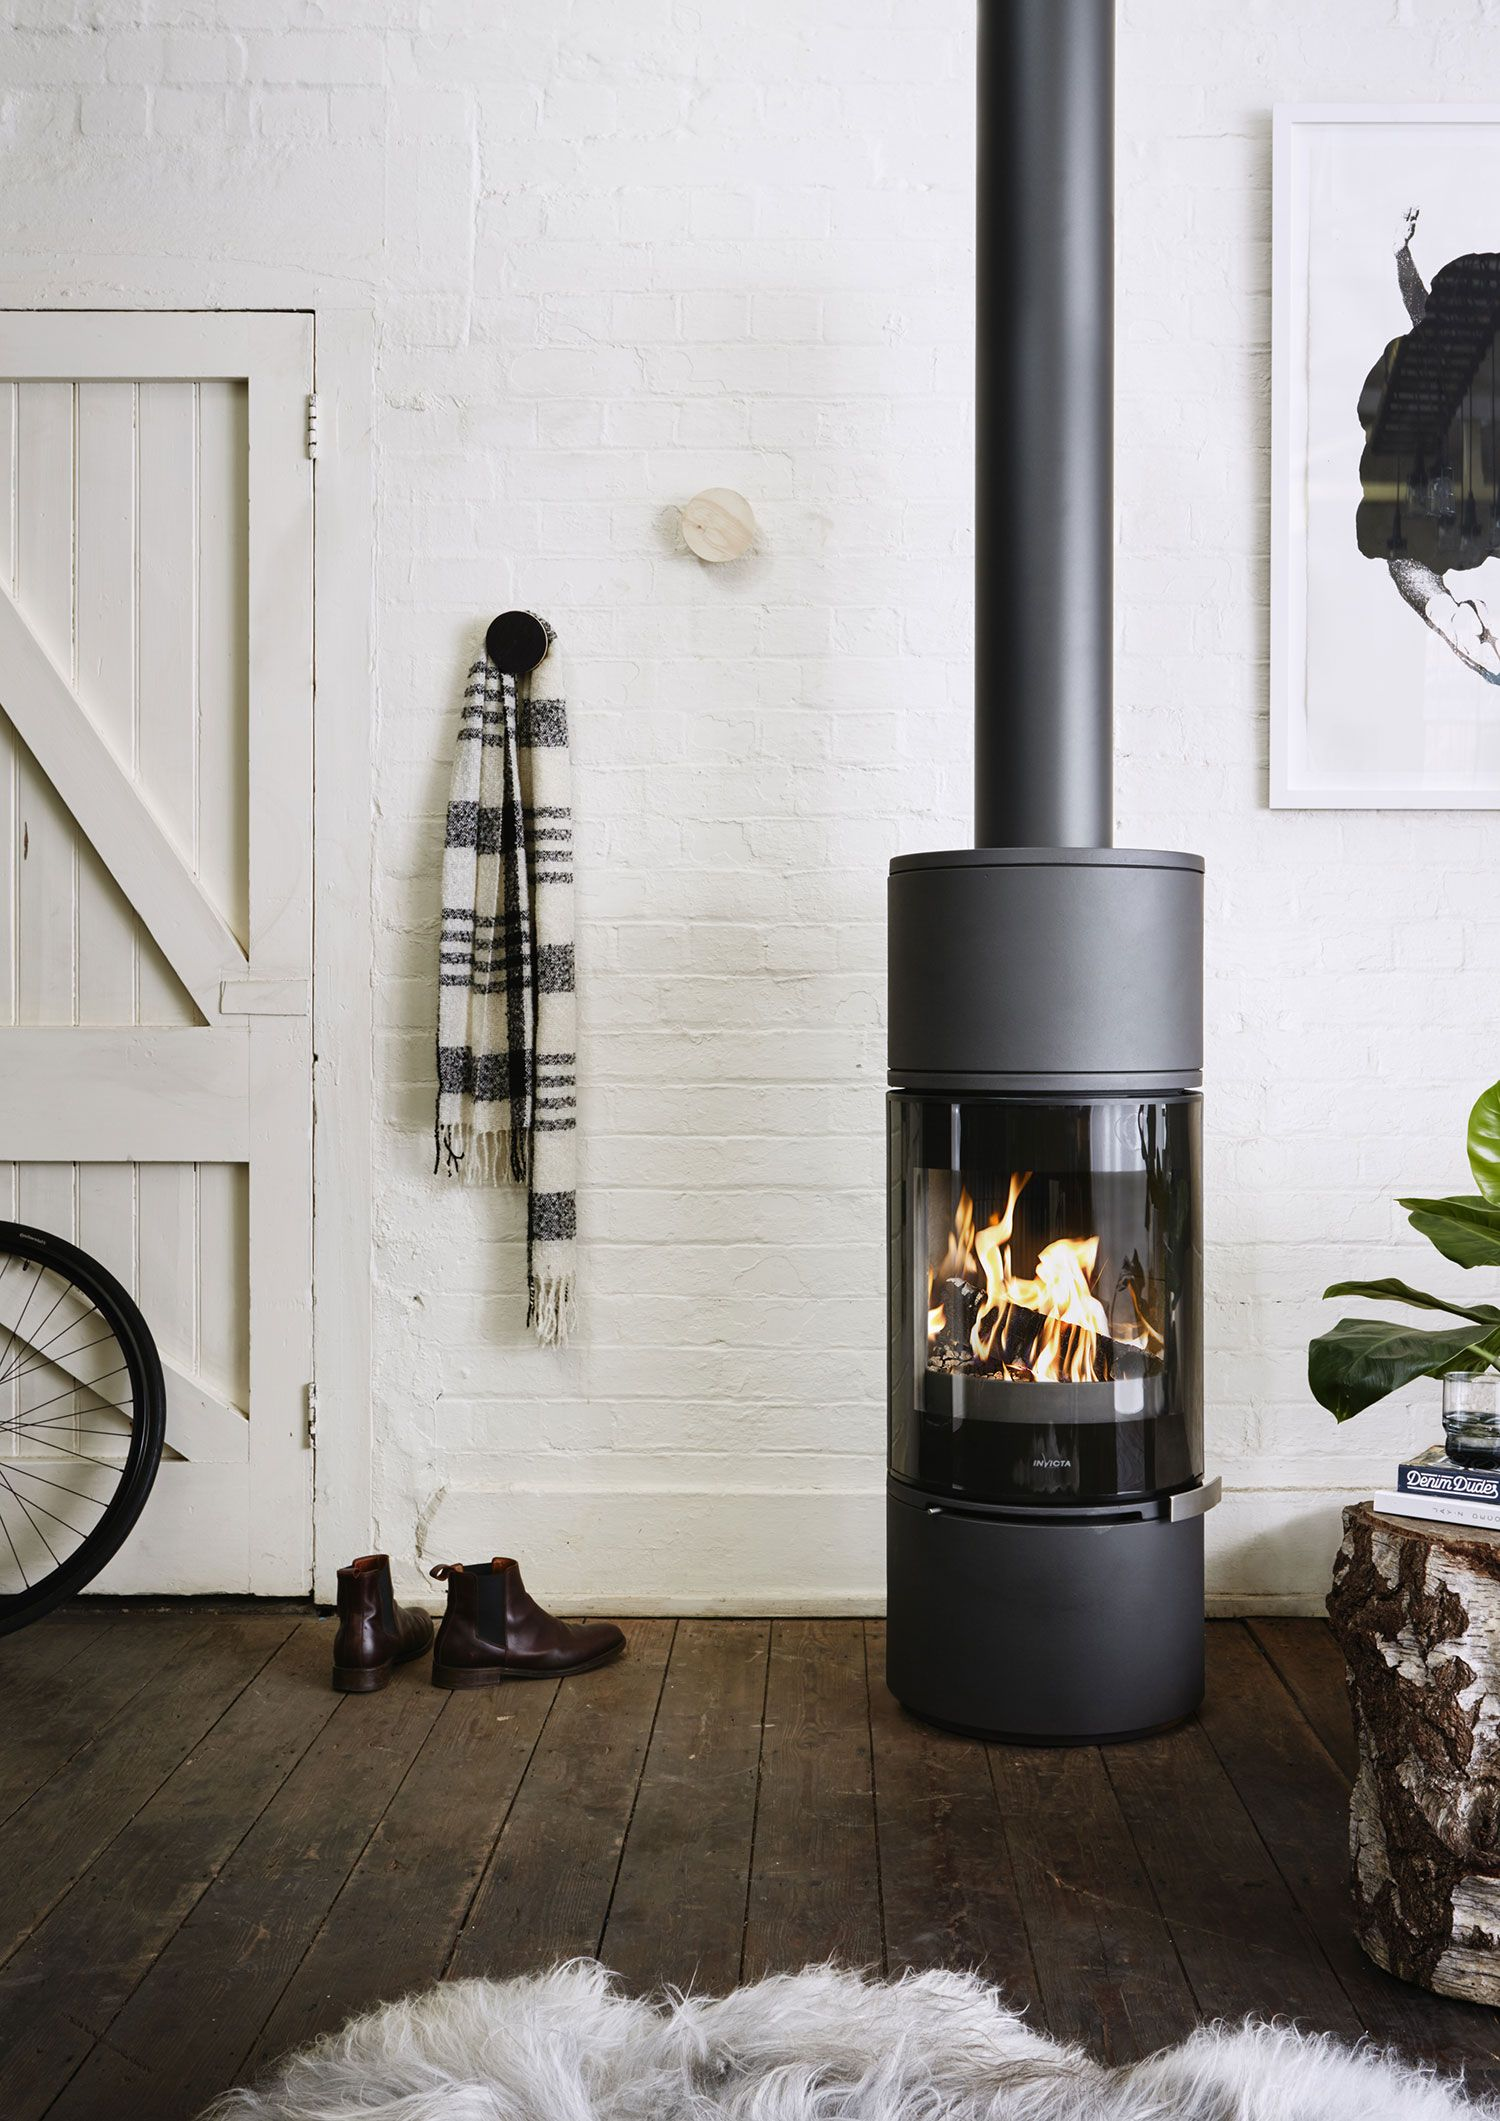 The Alcor Wood Burning Fireplace Is Sleek Elegant And Fuel Efficient With Panoramic Curved Glass And Stron Freestanding Fireplace Wood Stove Fireplace Design